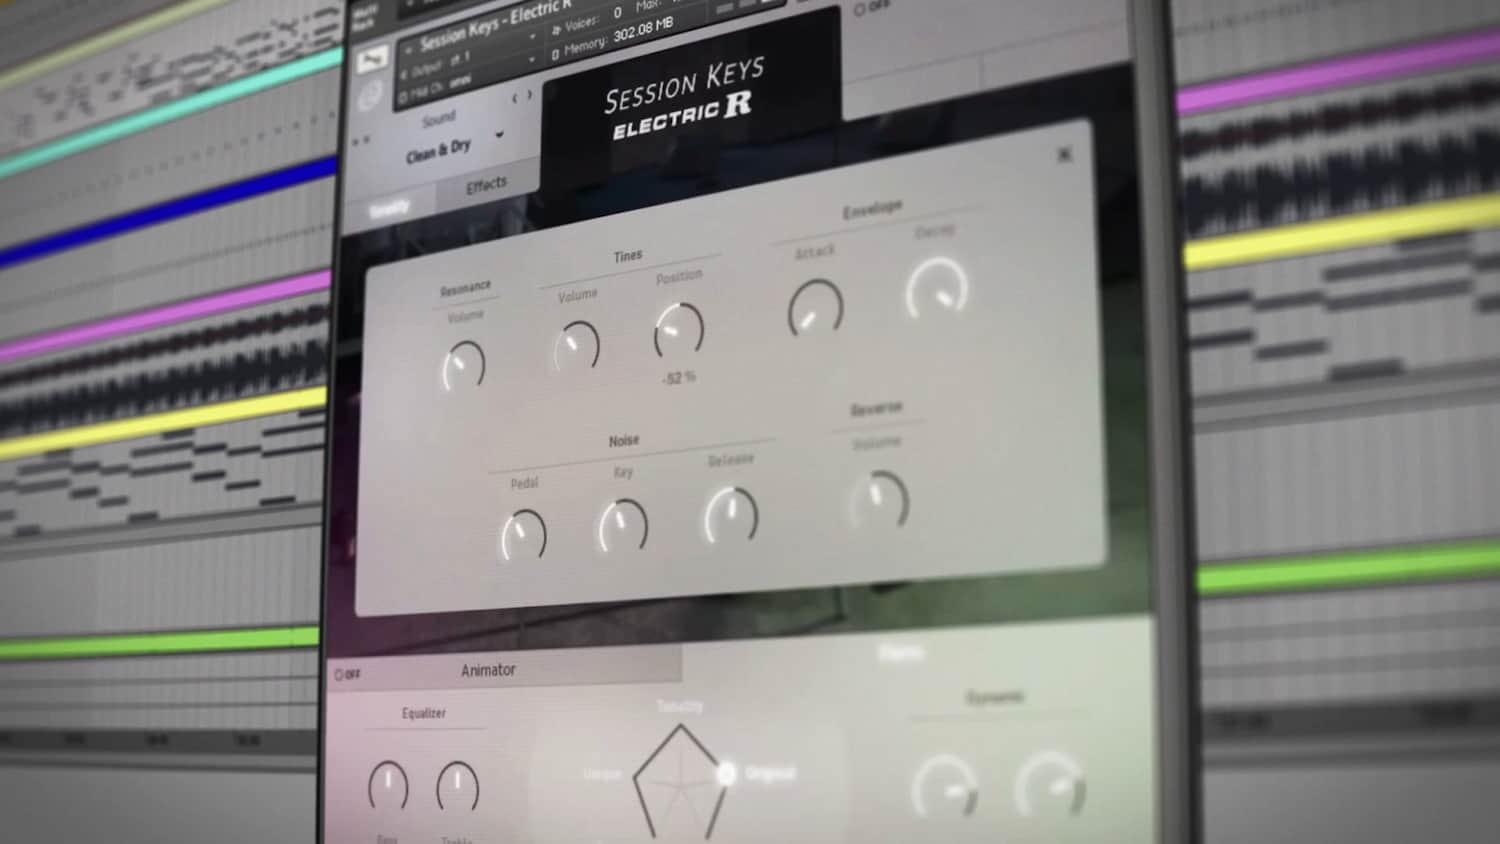 e-instruments session keys electric r walkthrough